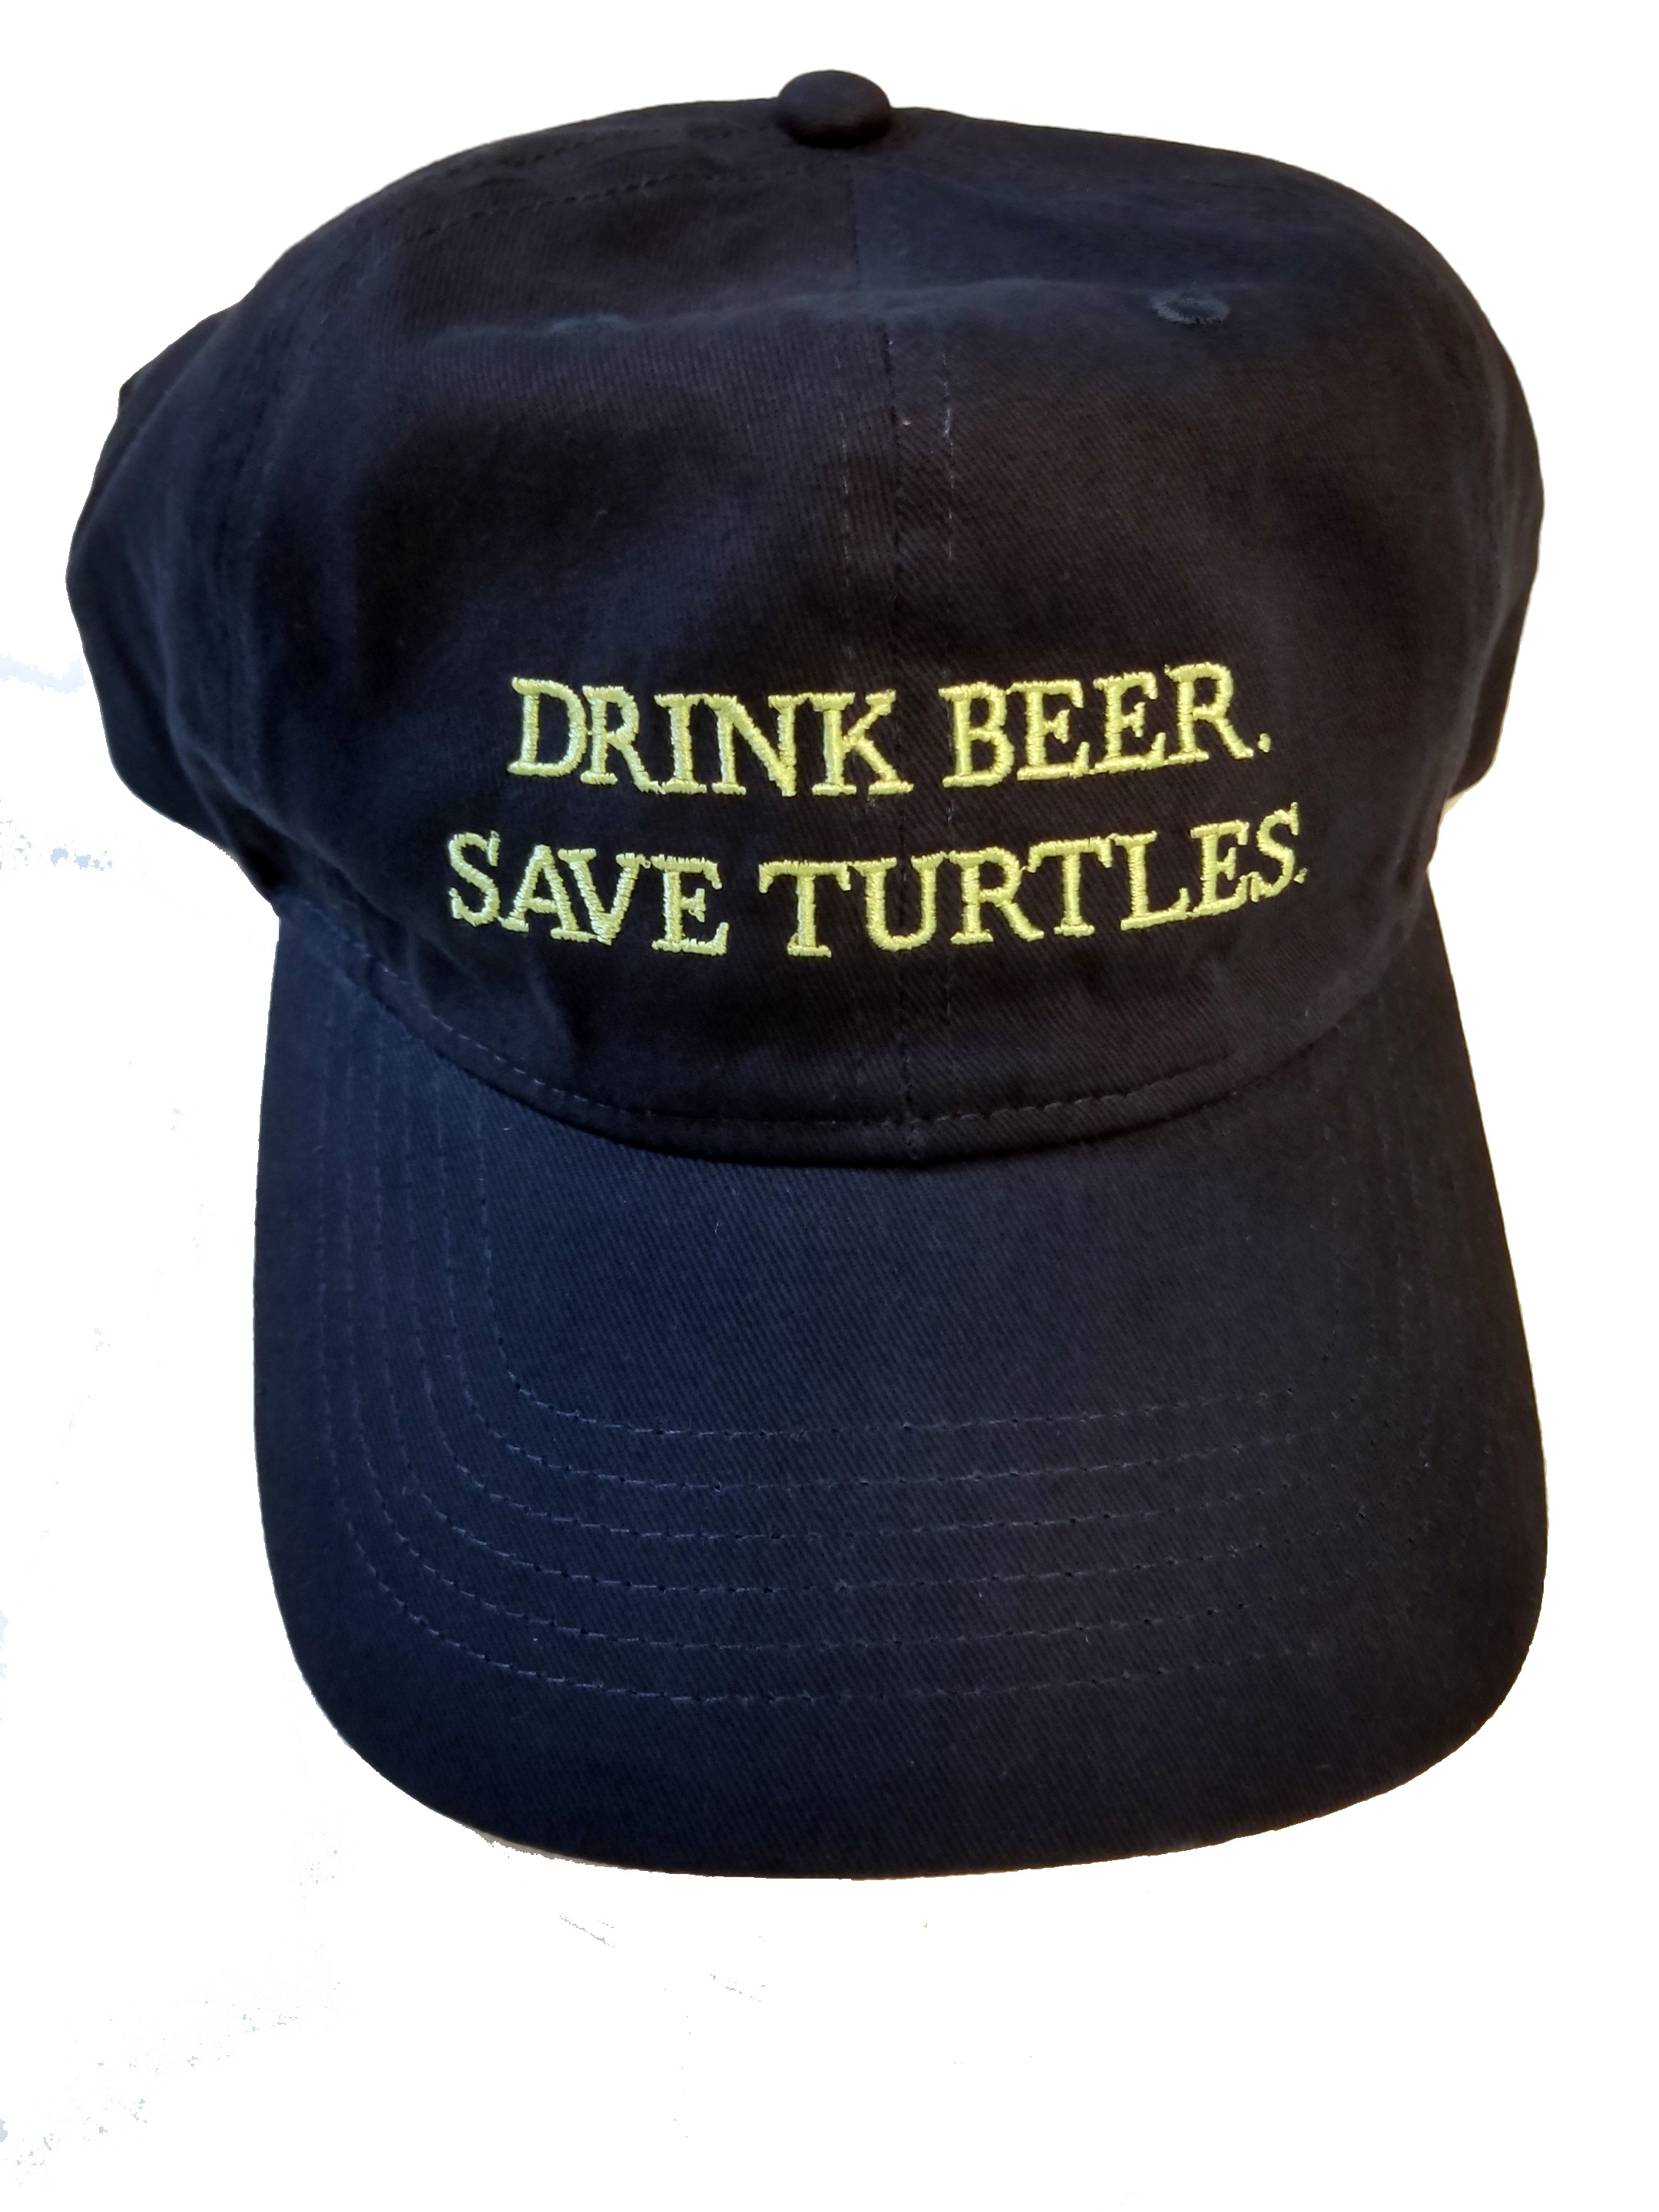 Drink Beer. Save Turtles. Unstructured Hat. Click Image to go to TSA Store.